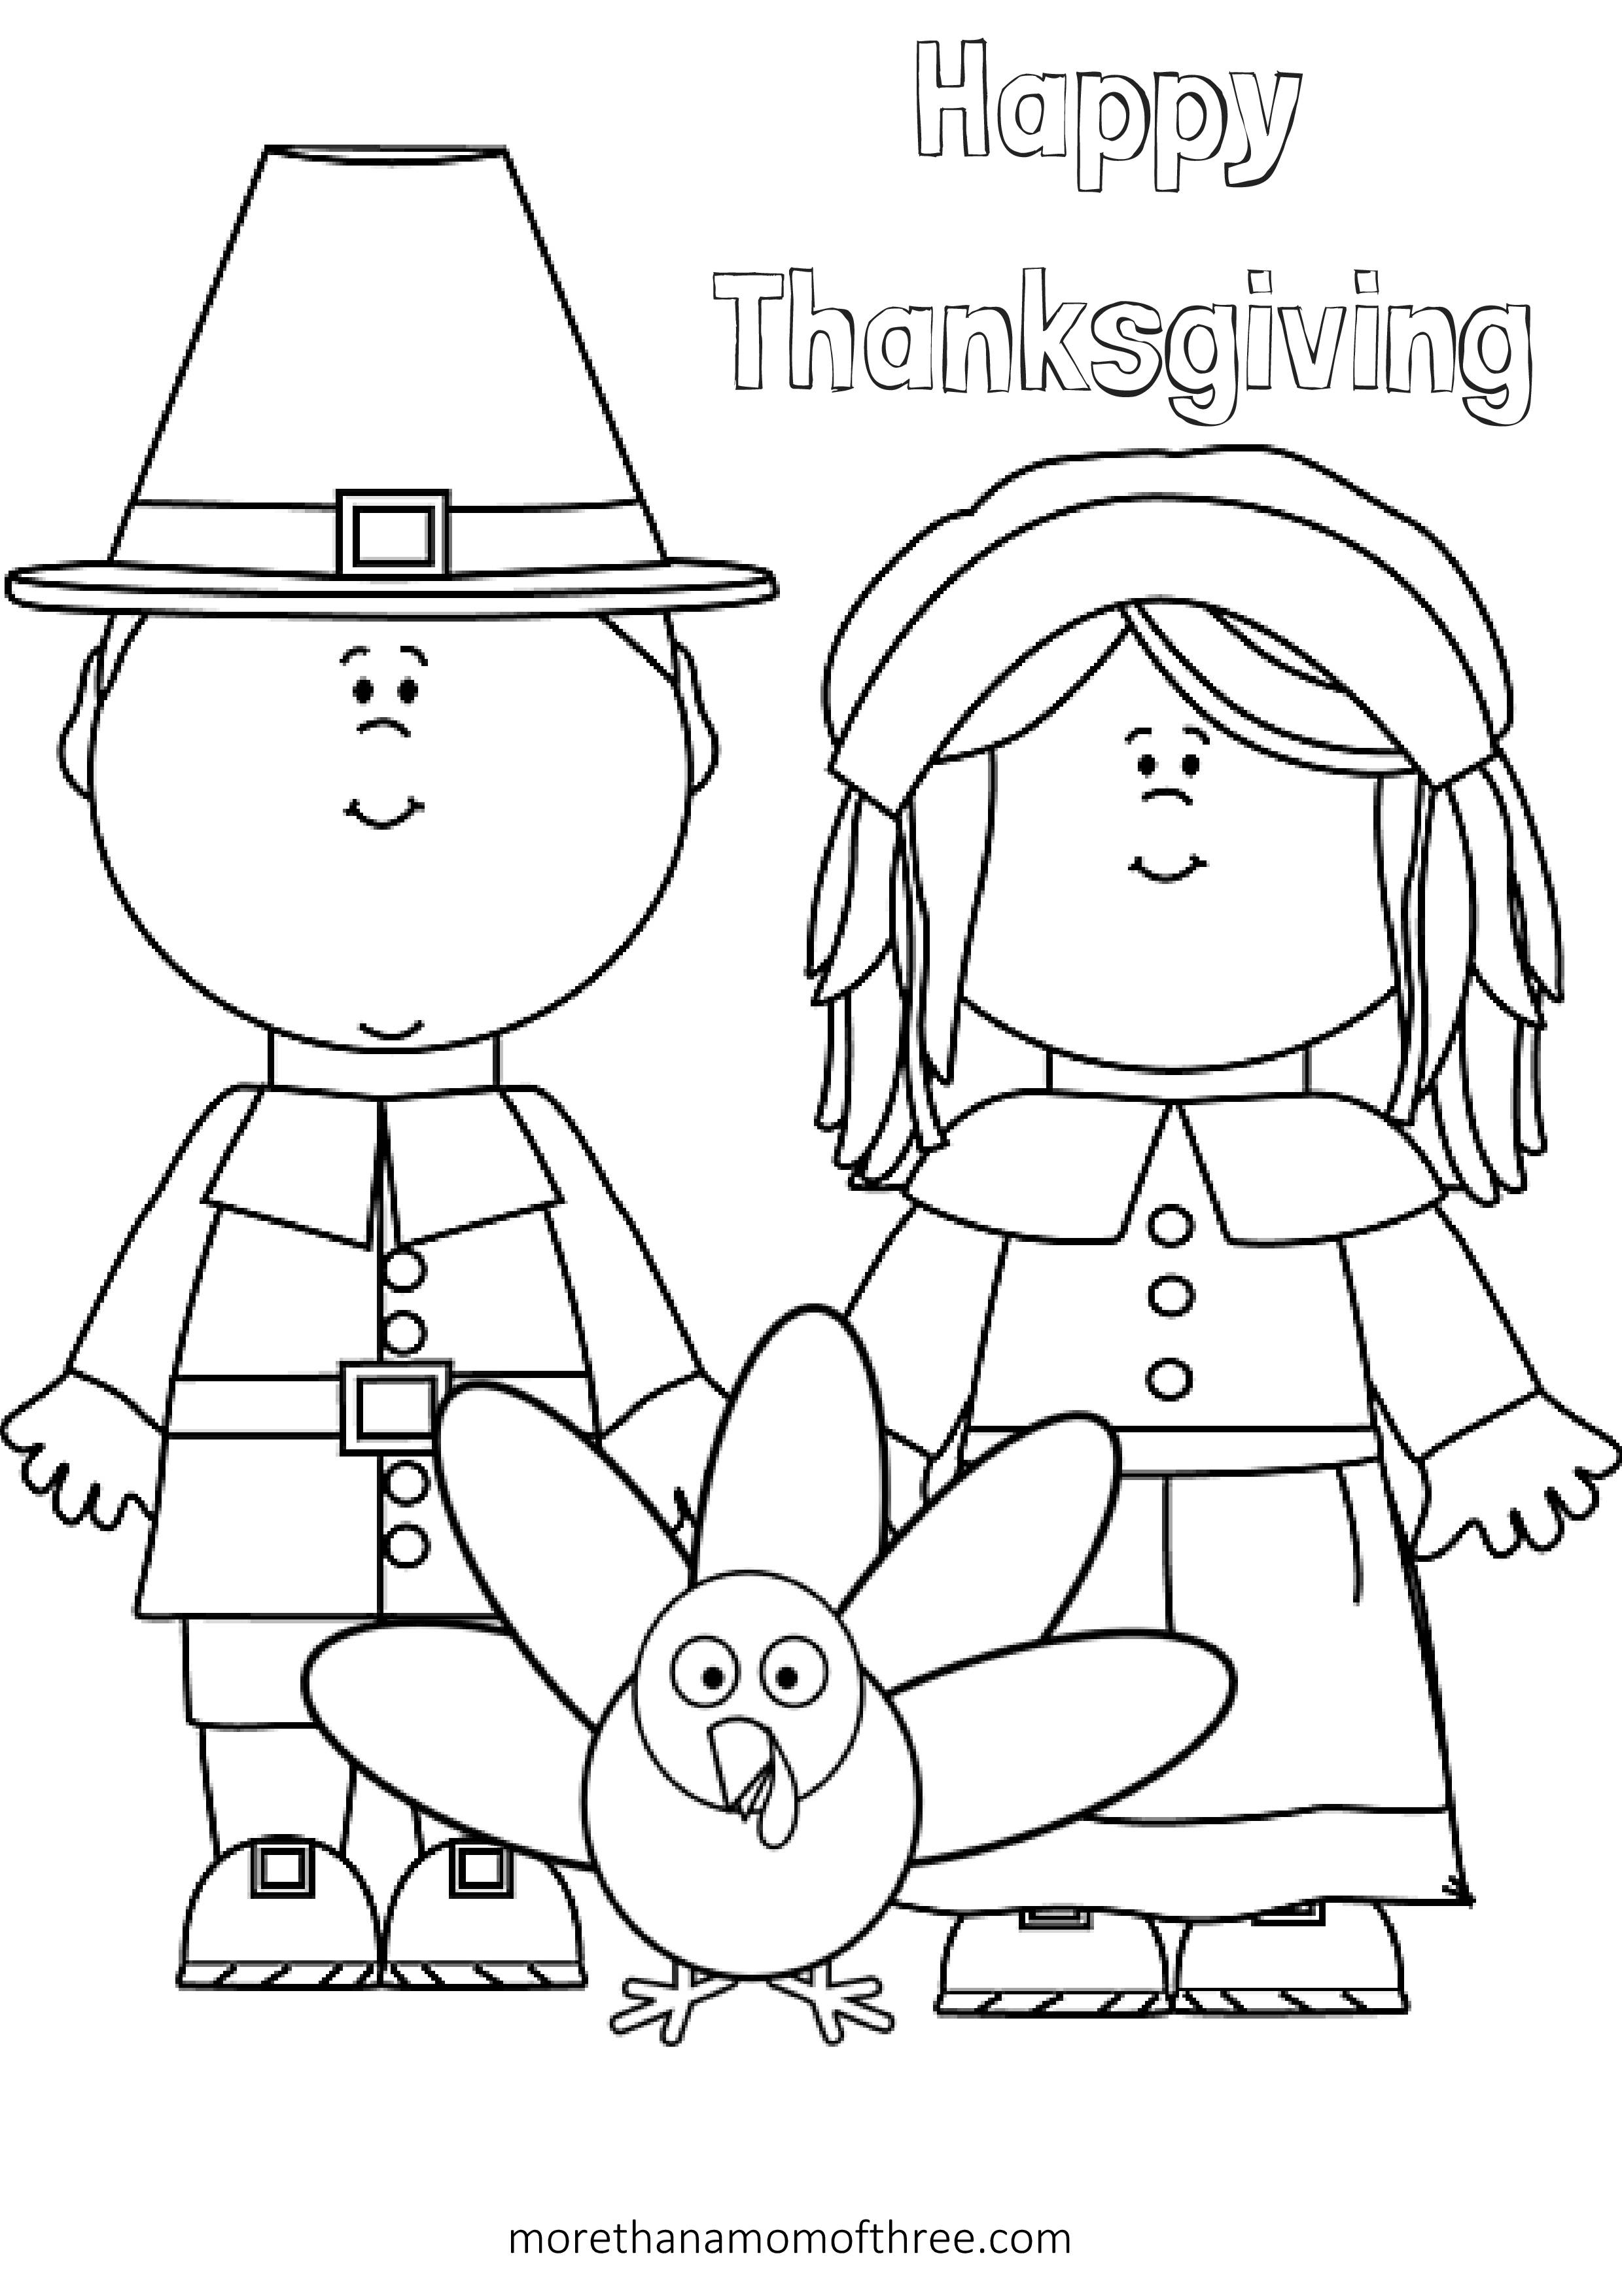 Oriental Trading Coloring Pages Oriental Trading Coloring Pages Best Free Coloring Pages Site